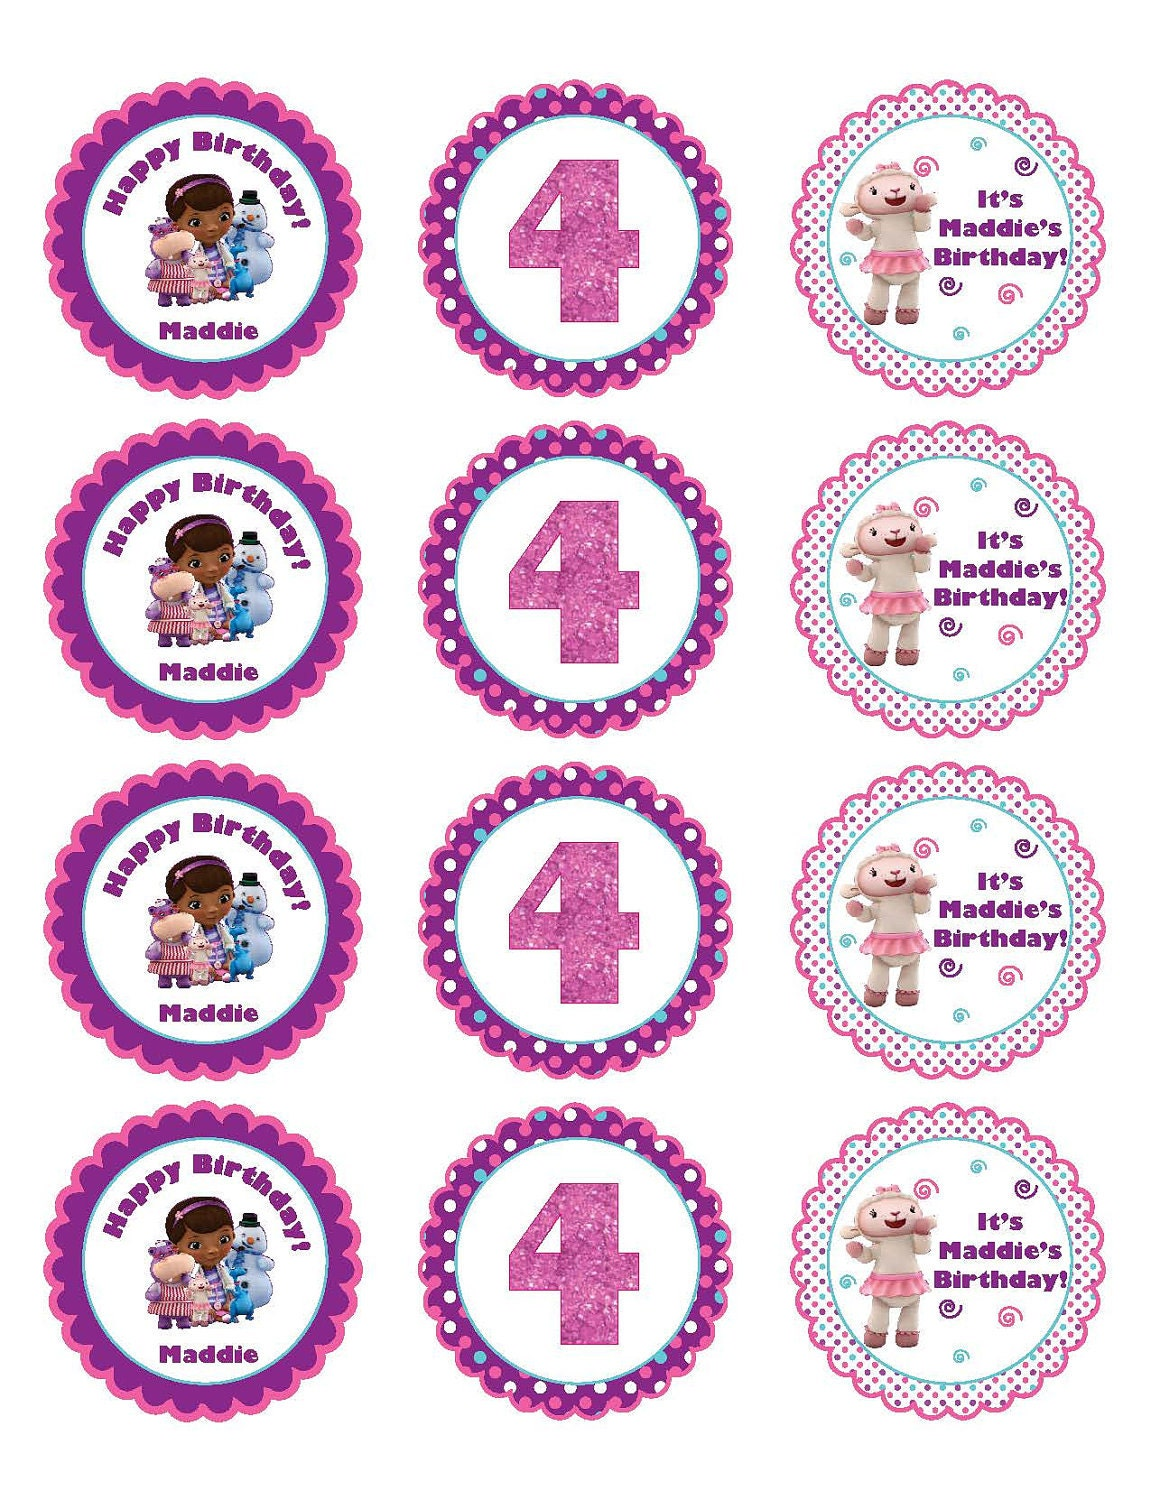 This is an image of Eloquent Free Doc Mcstuffins Printable